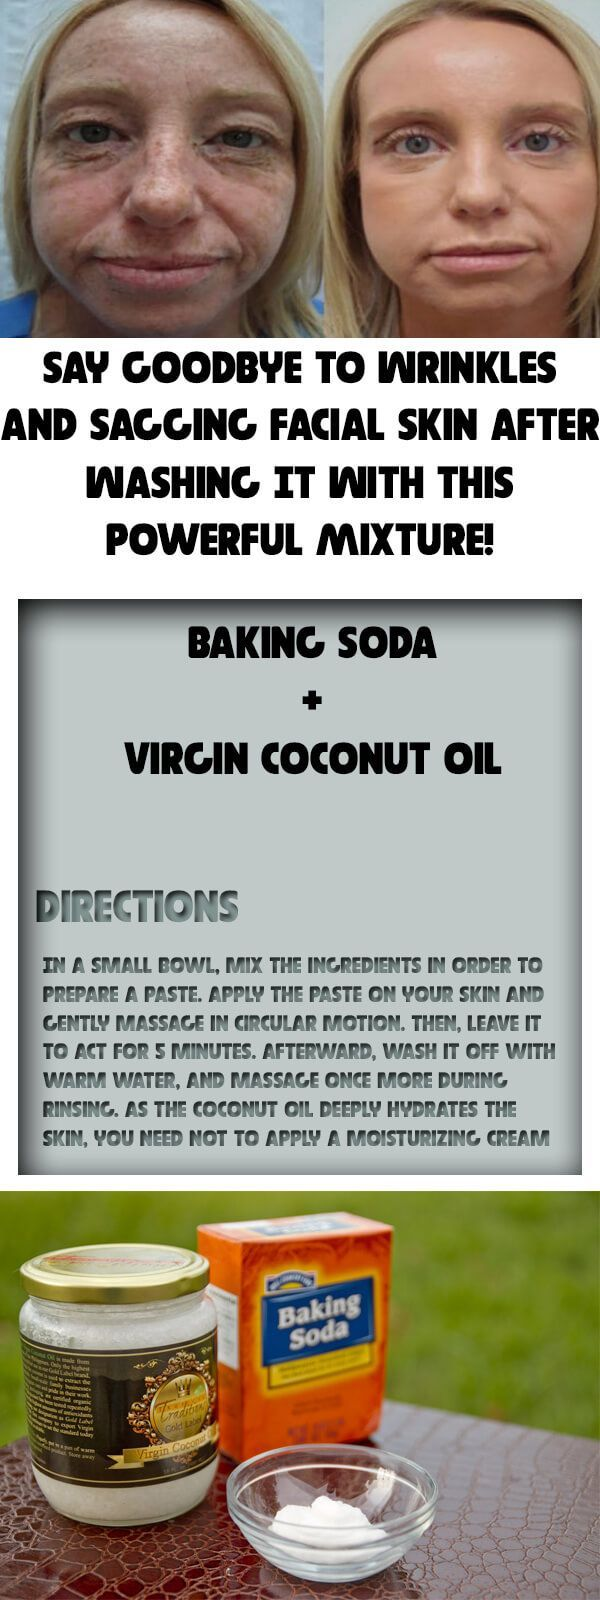 After washing your face with this remedy, you will have no acne, reduced wrinkles, and no more sagging skin! Baking soda and coconut oil both have tons of benefits, but they can transform your skin…